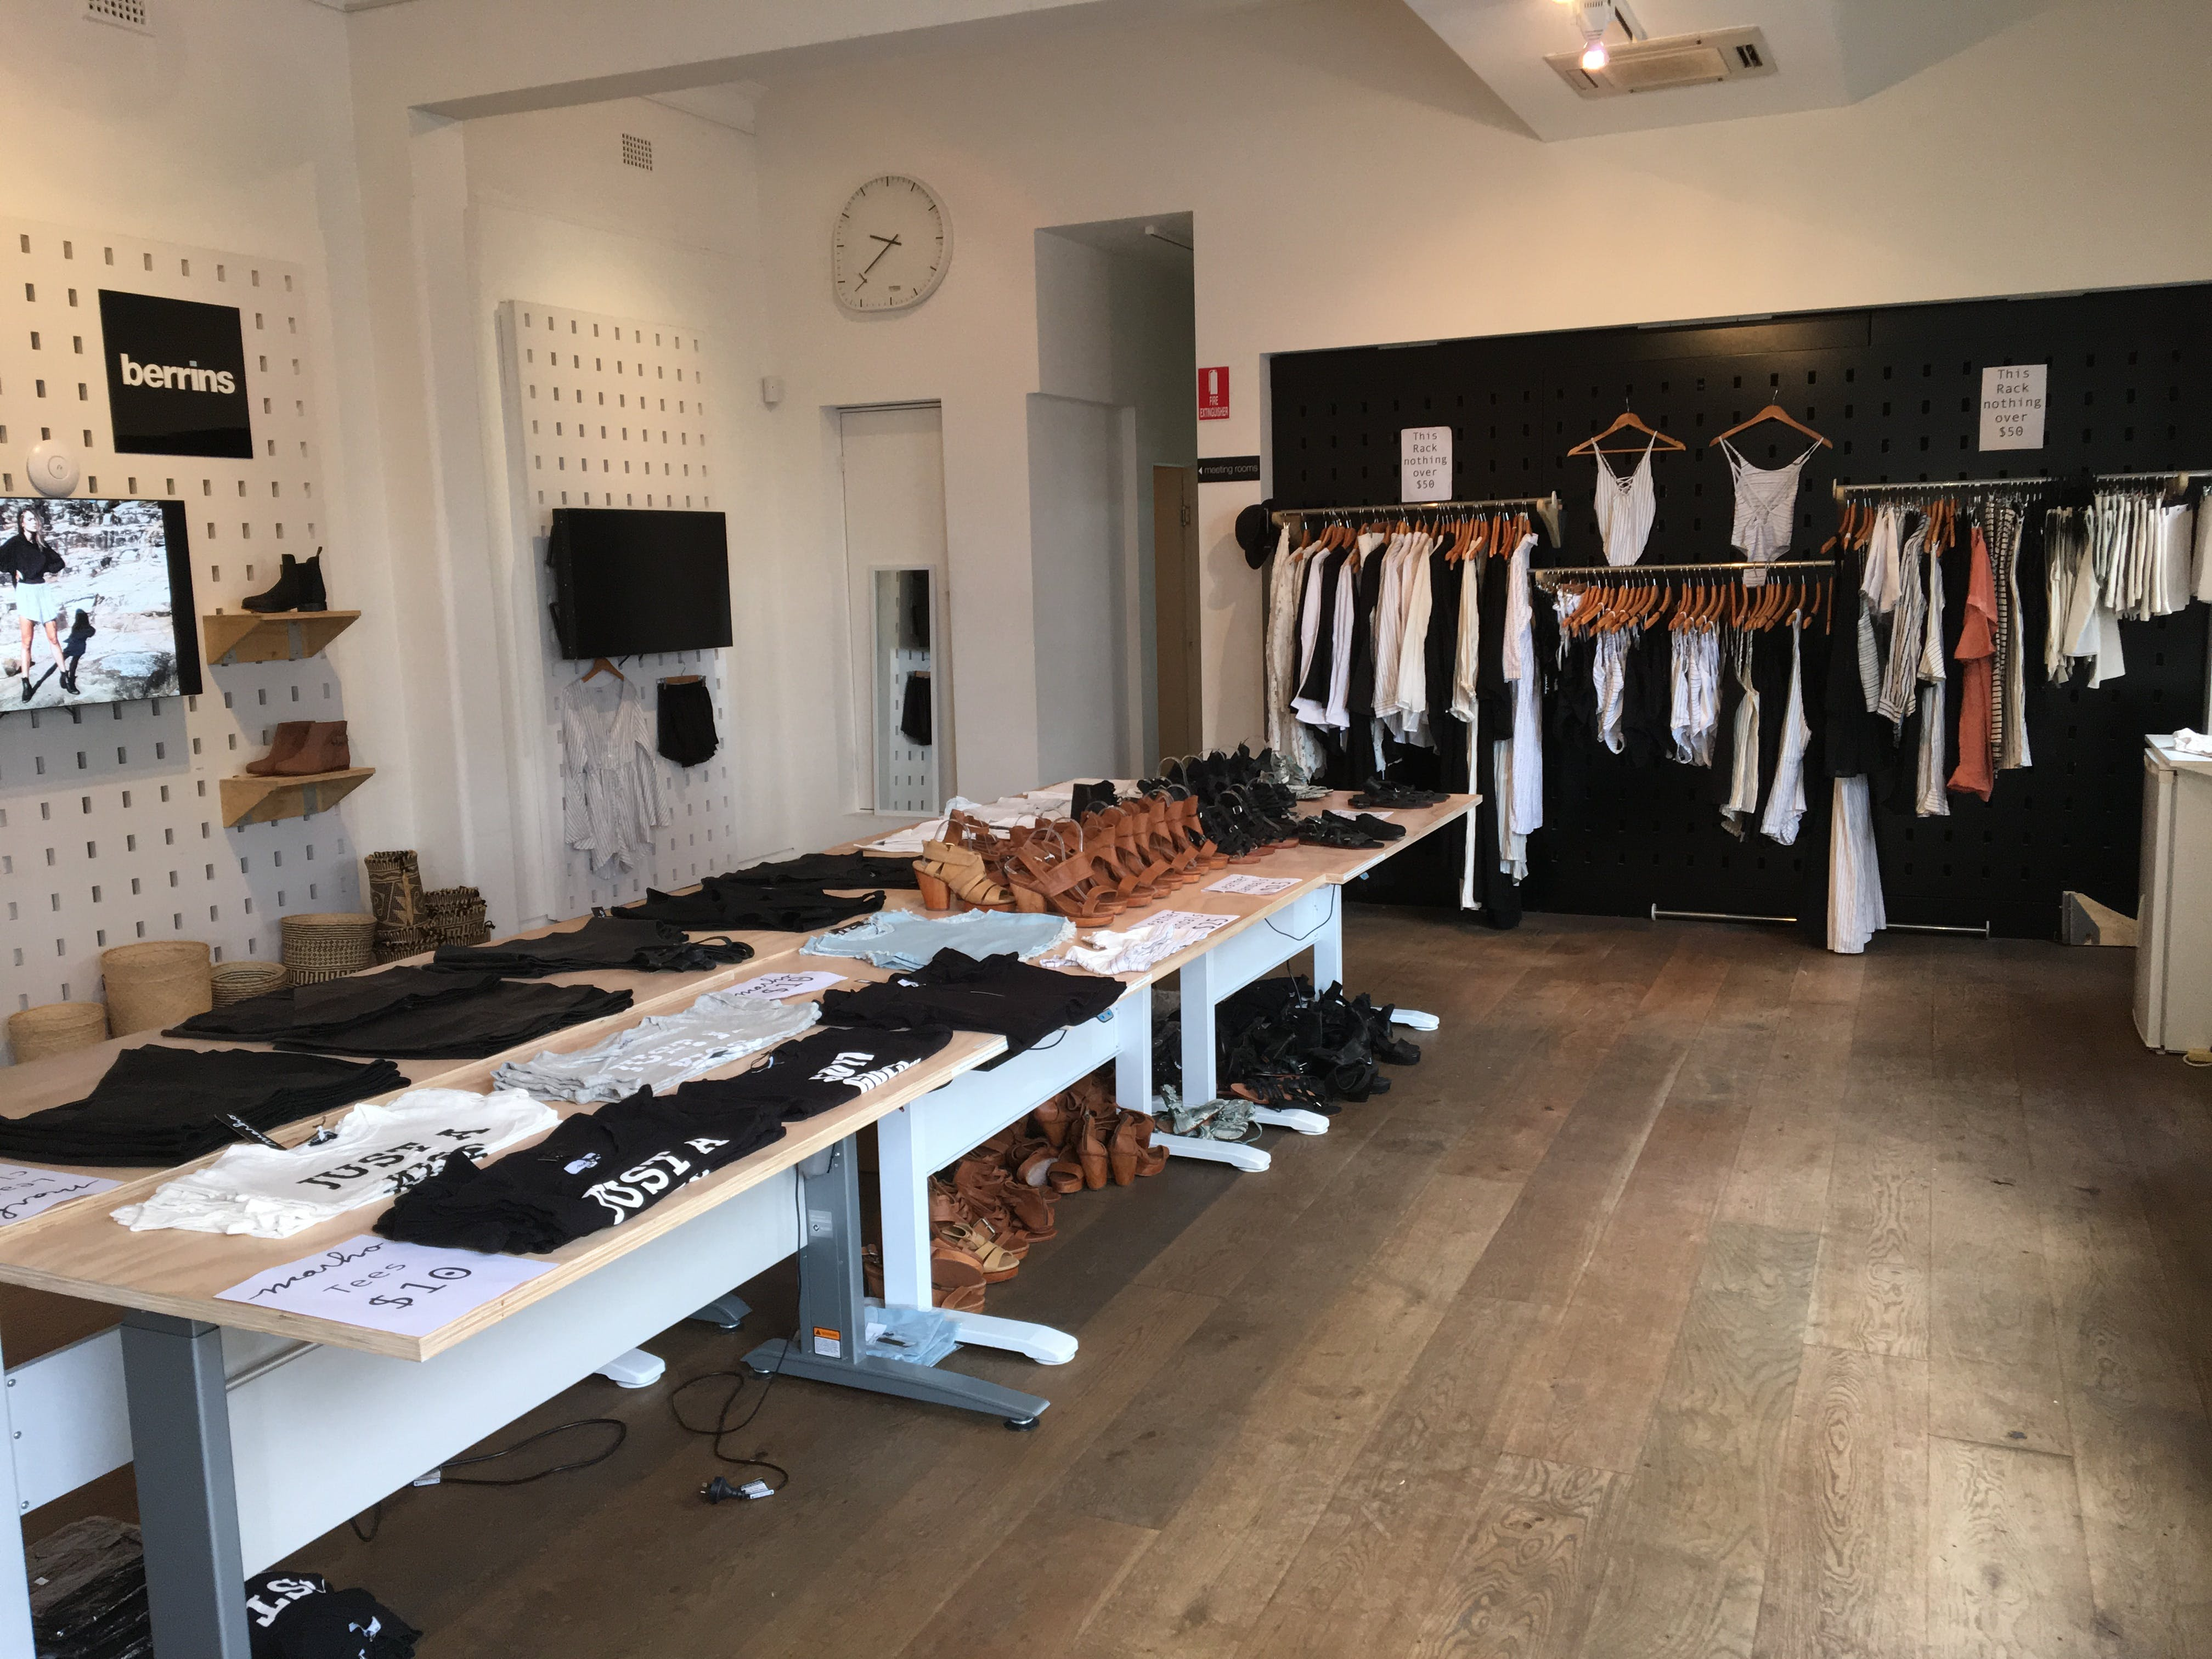 Stylish pop-up shop available on weekends, image 1